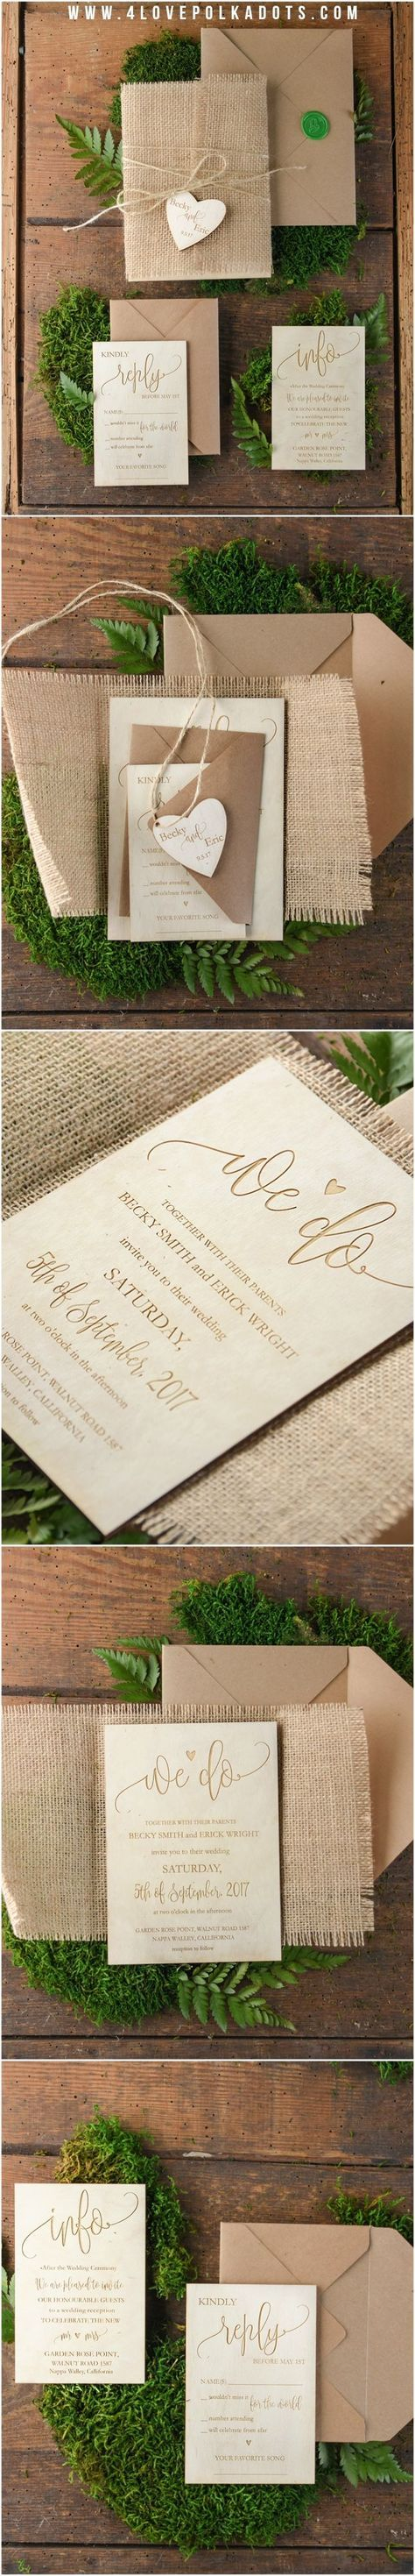 luxury wedding invitations dallas%0A Oh we do like a little rustic luxury  And these beautiful wedding  invitations by